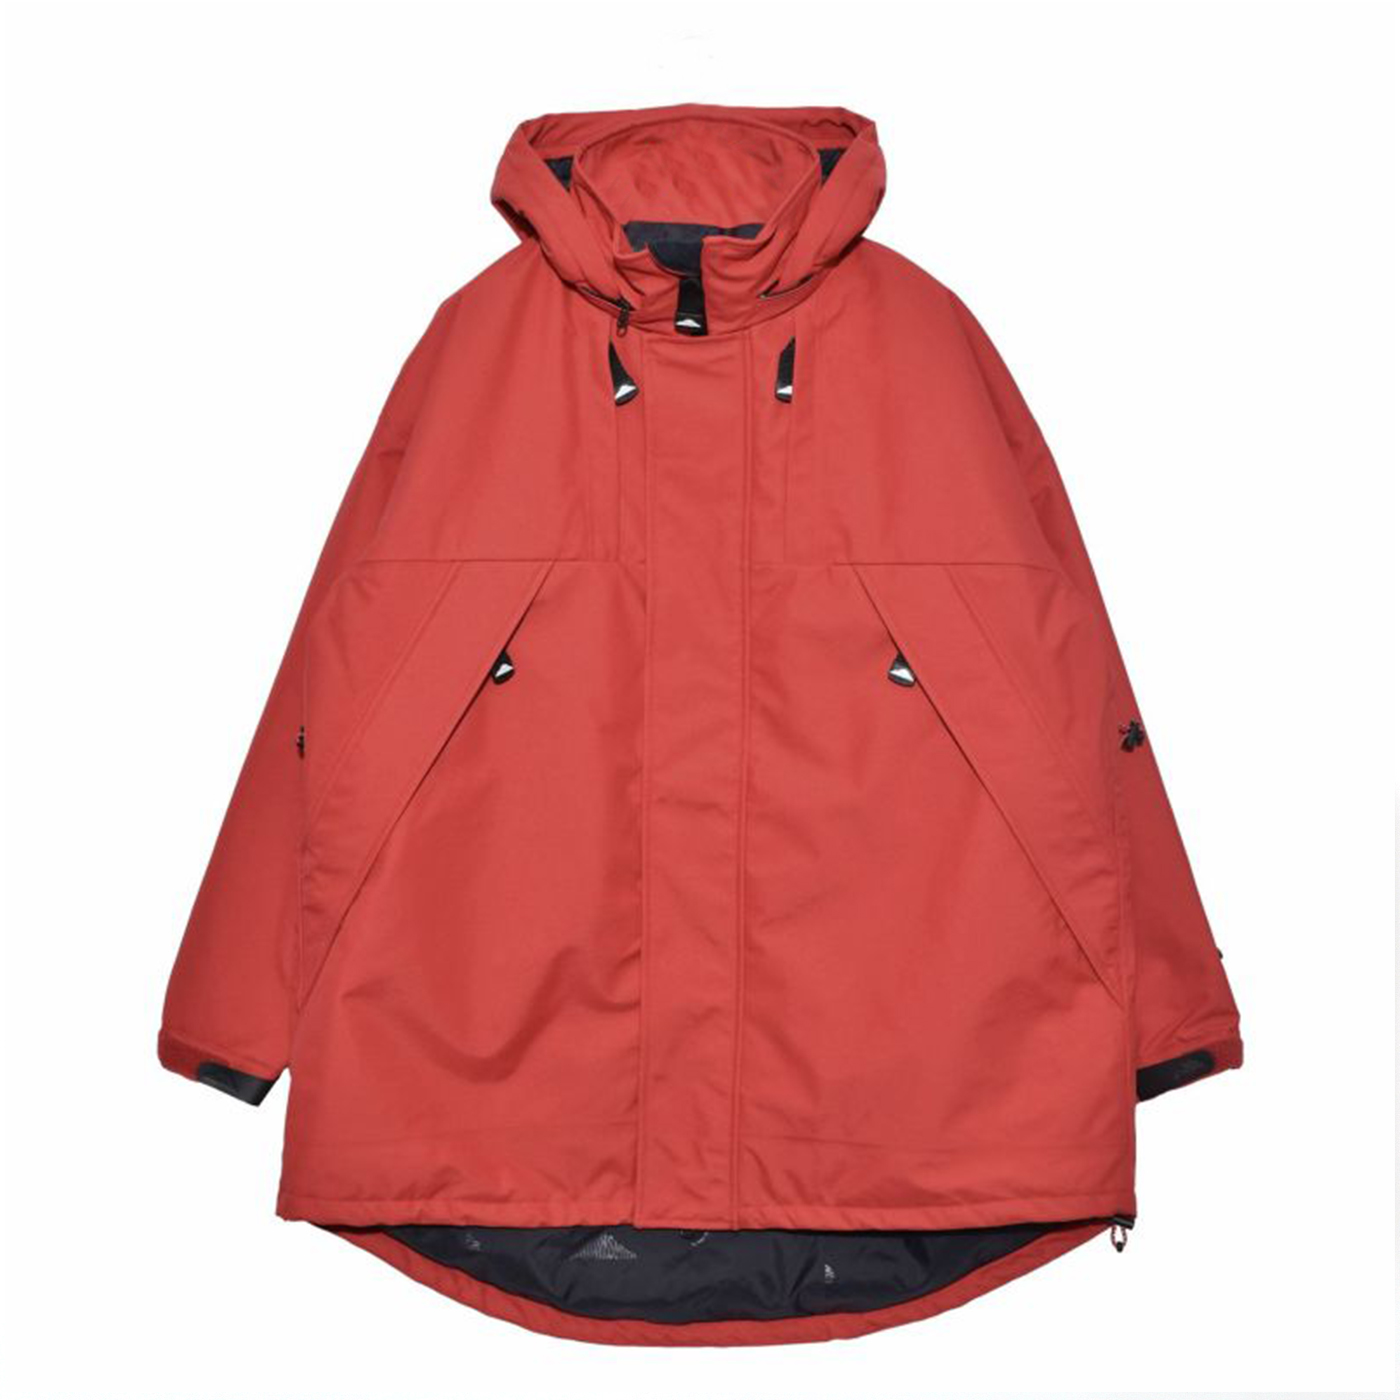 product: COACH JACKET / color: RED 1